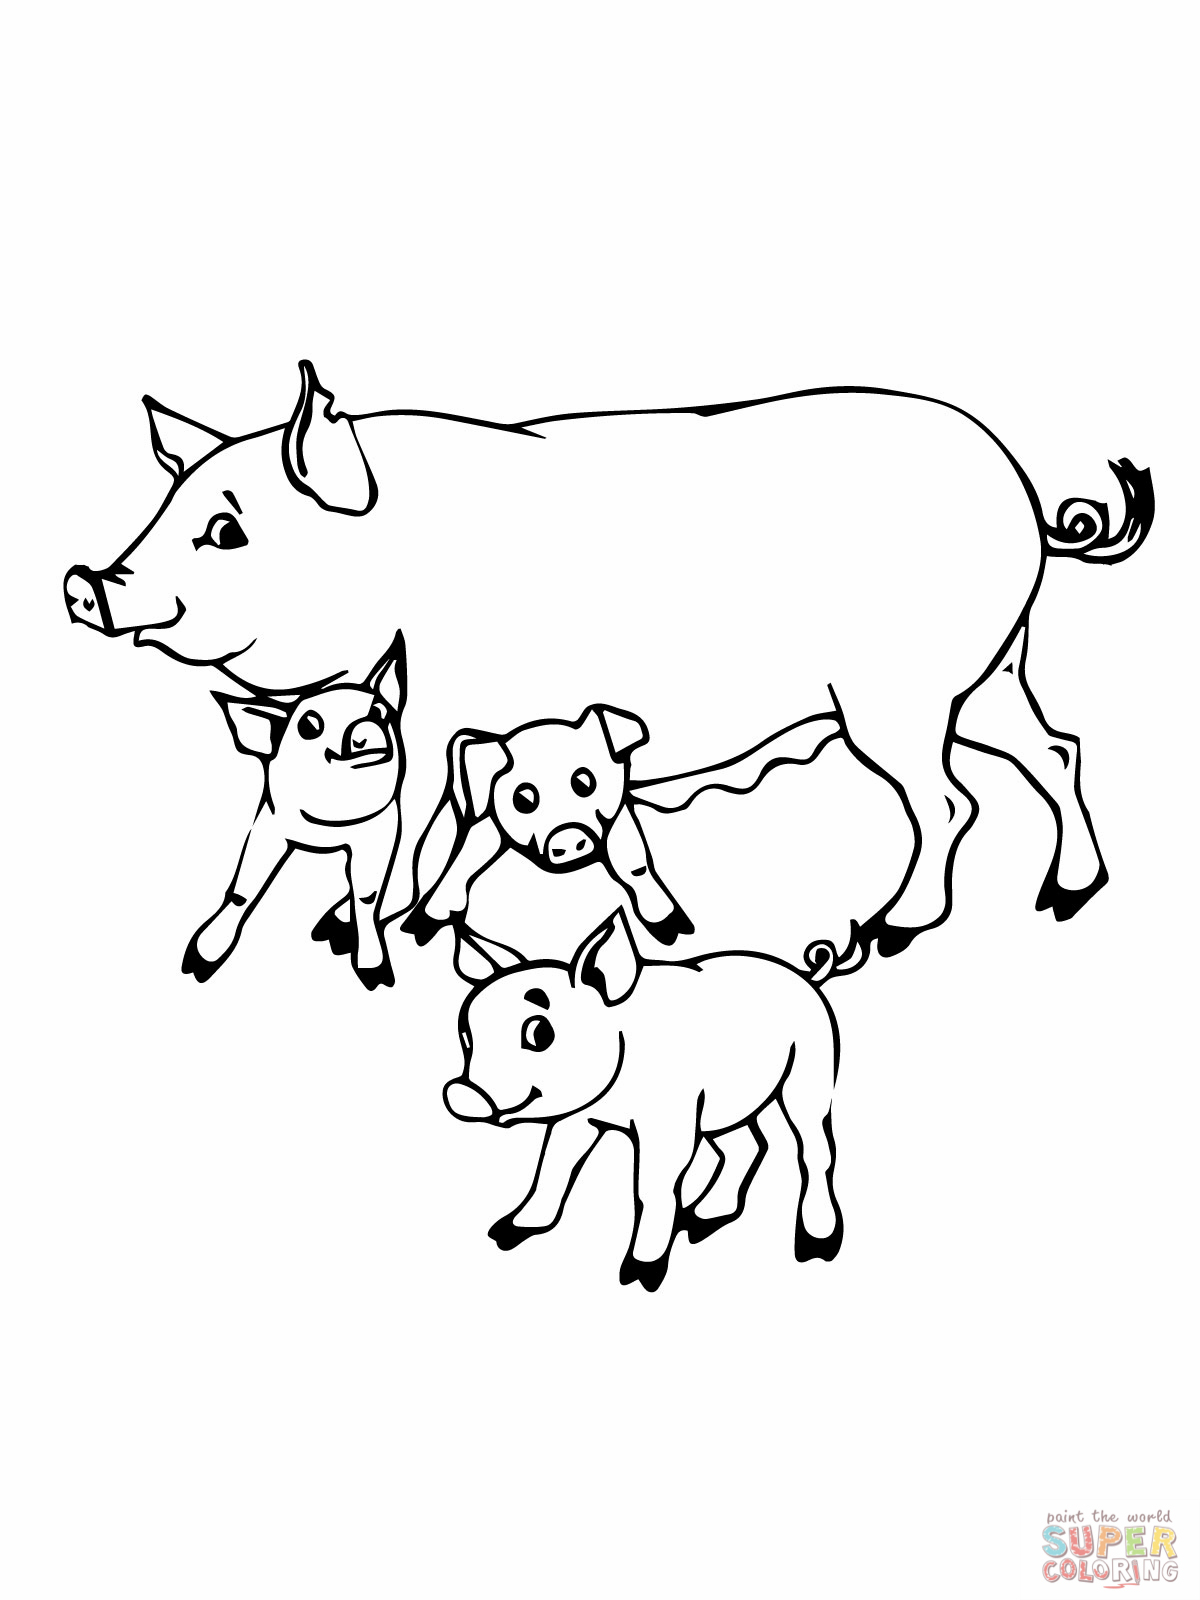 Pig And Piglet Coloring Pages | Coloring Pages